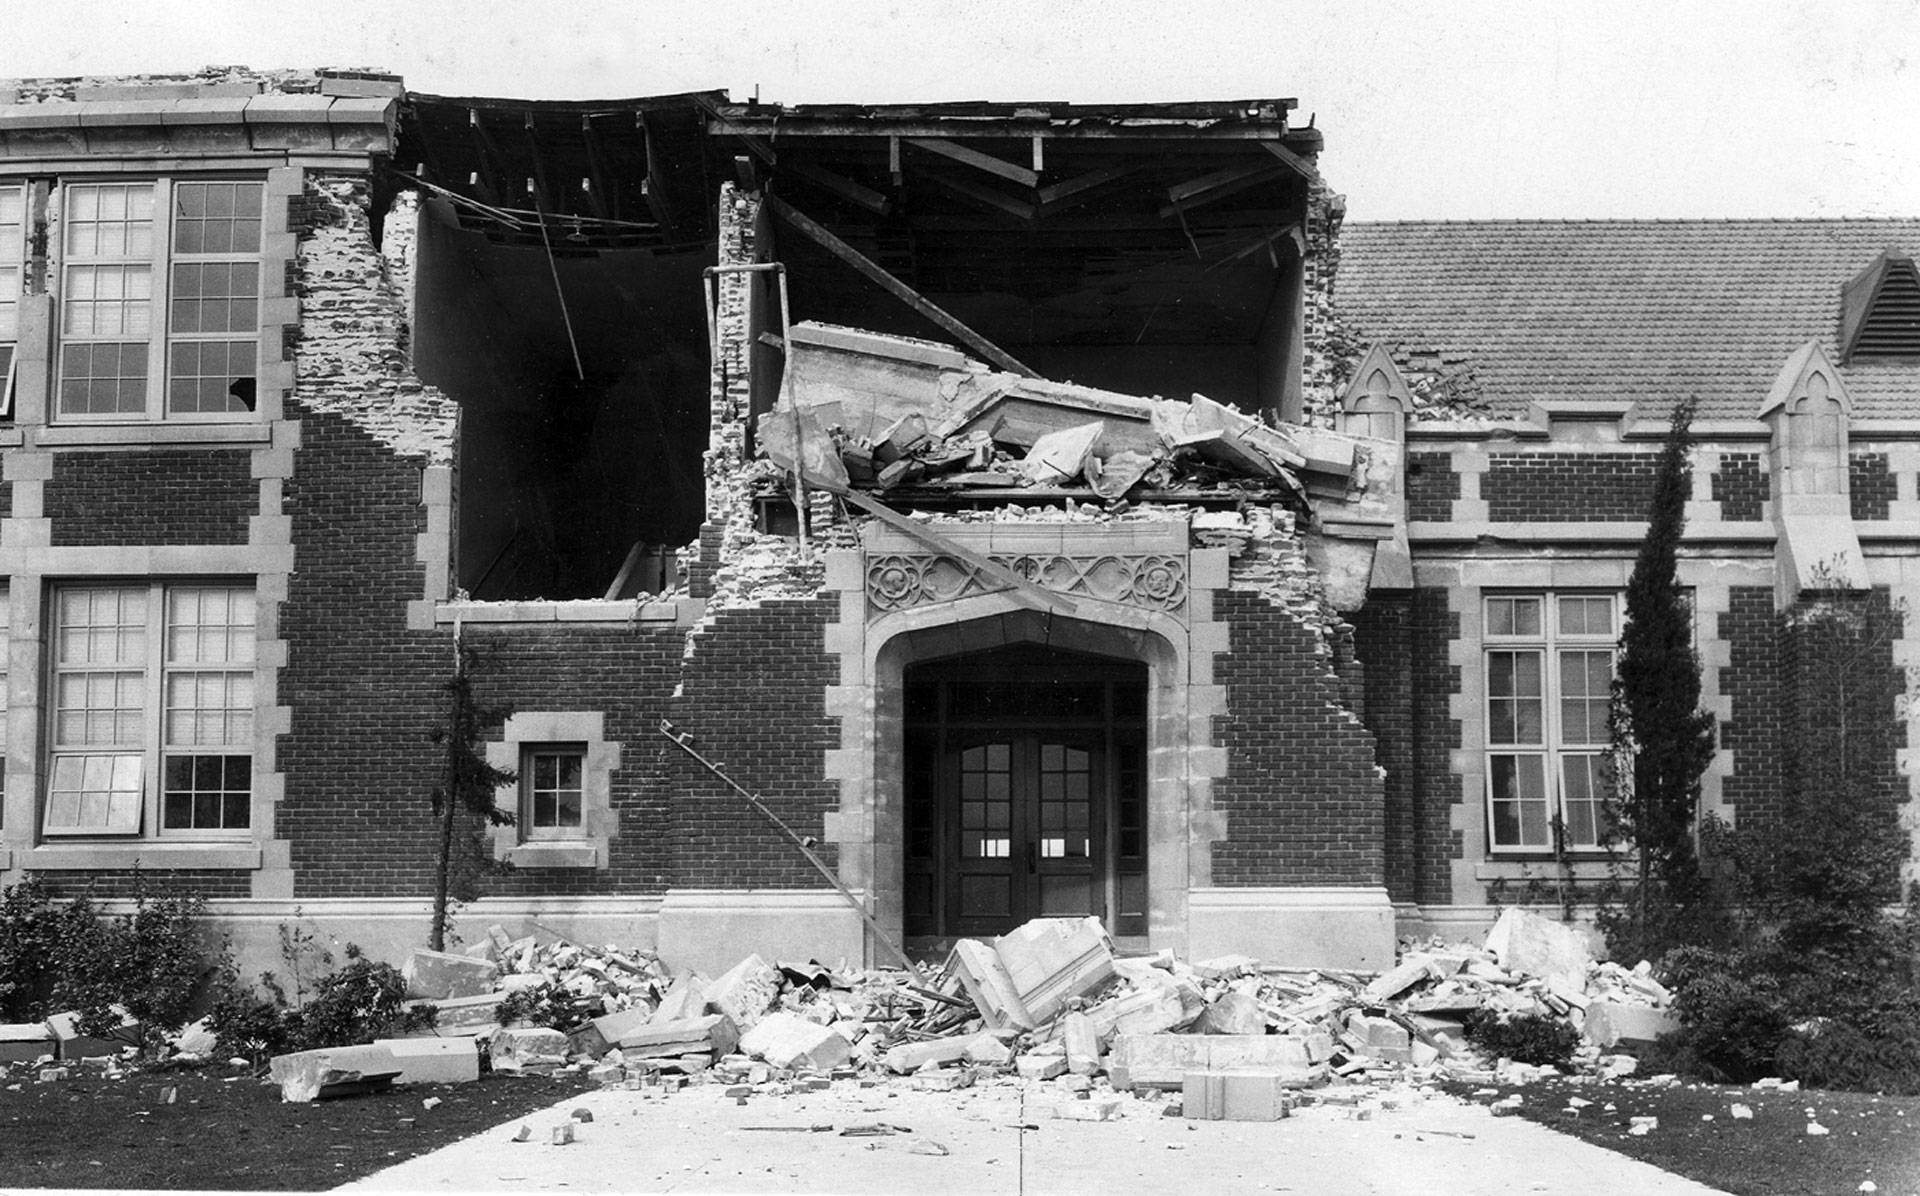 The ruins of John Muir School in Long Beach after an earthquake struck on March 10, 1933. Wikimedia Commons